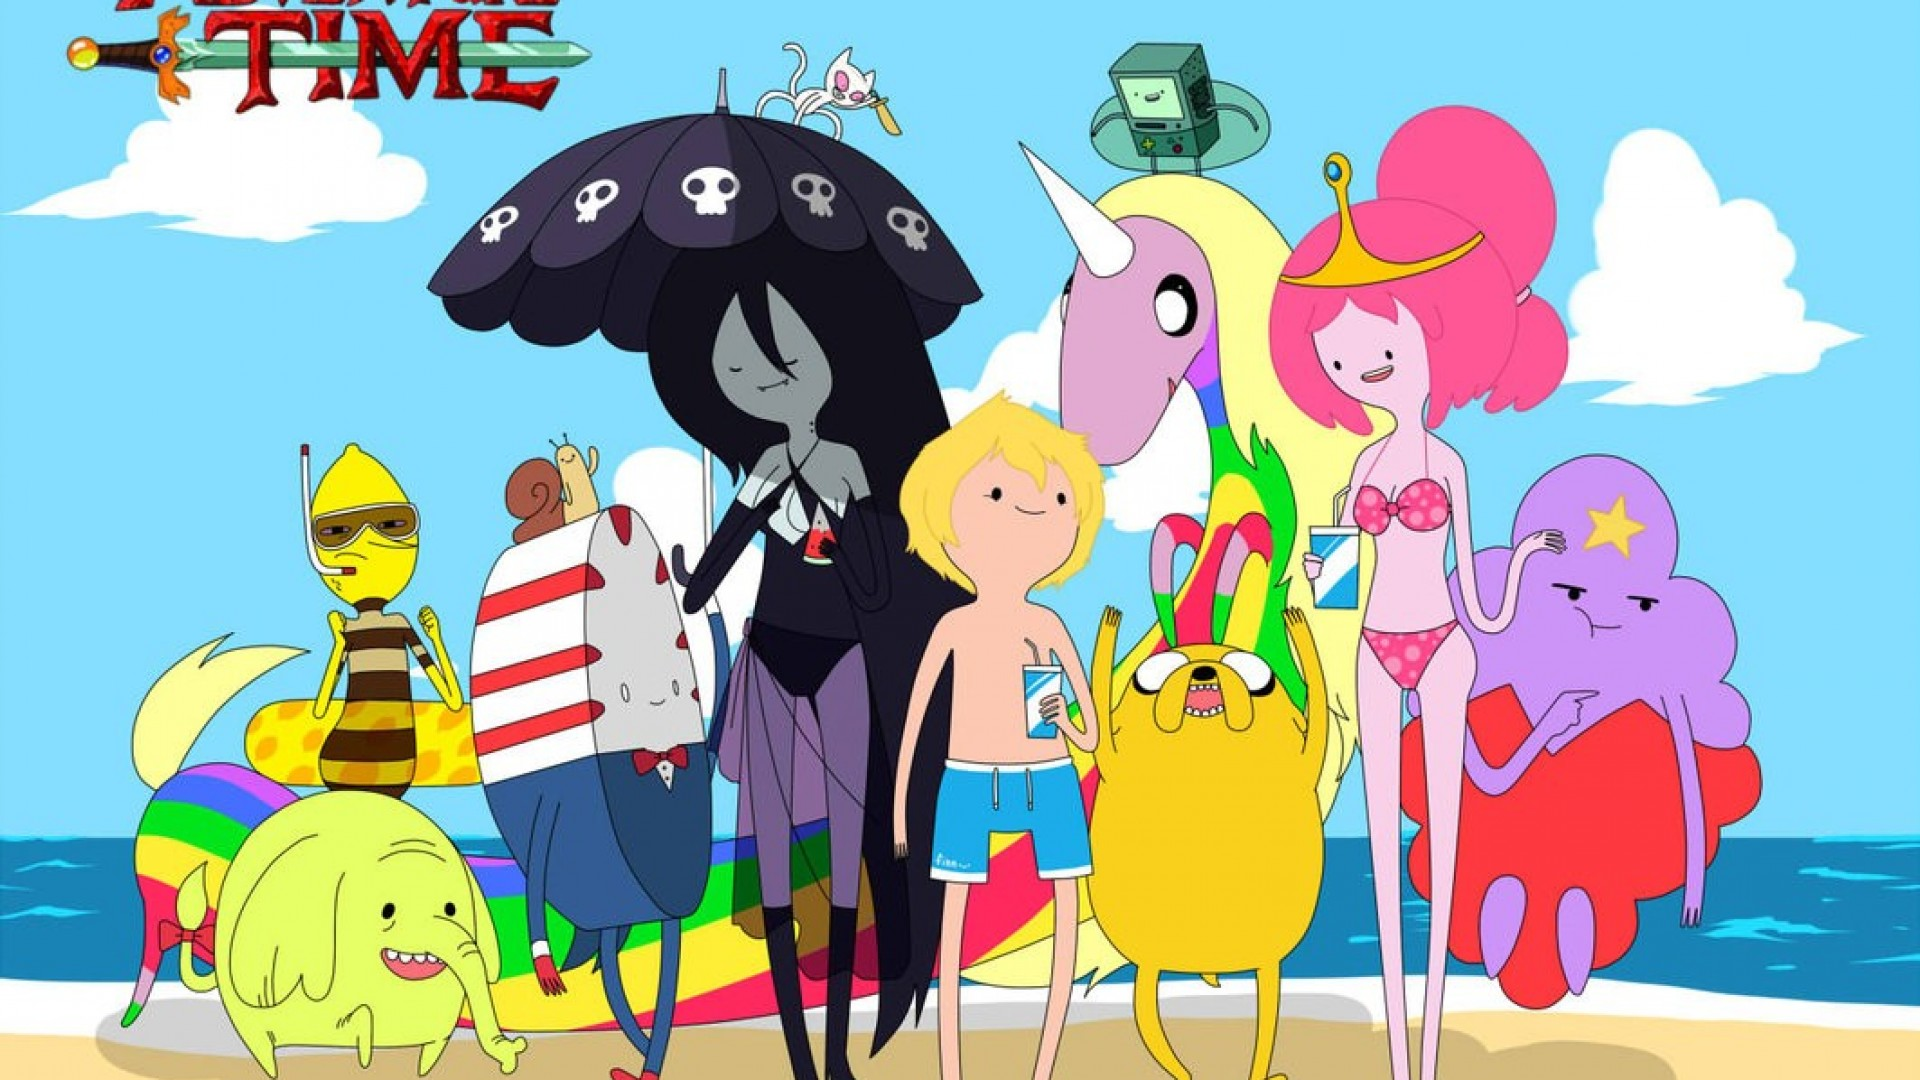 Adventure time 2014 wallpaper high definition high quality adventure time 2014 thecheapjerseys Choice Image